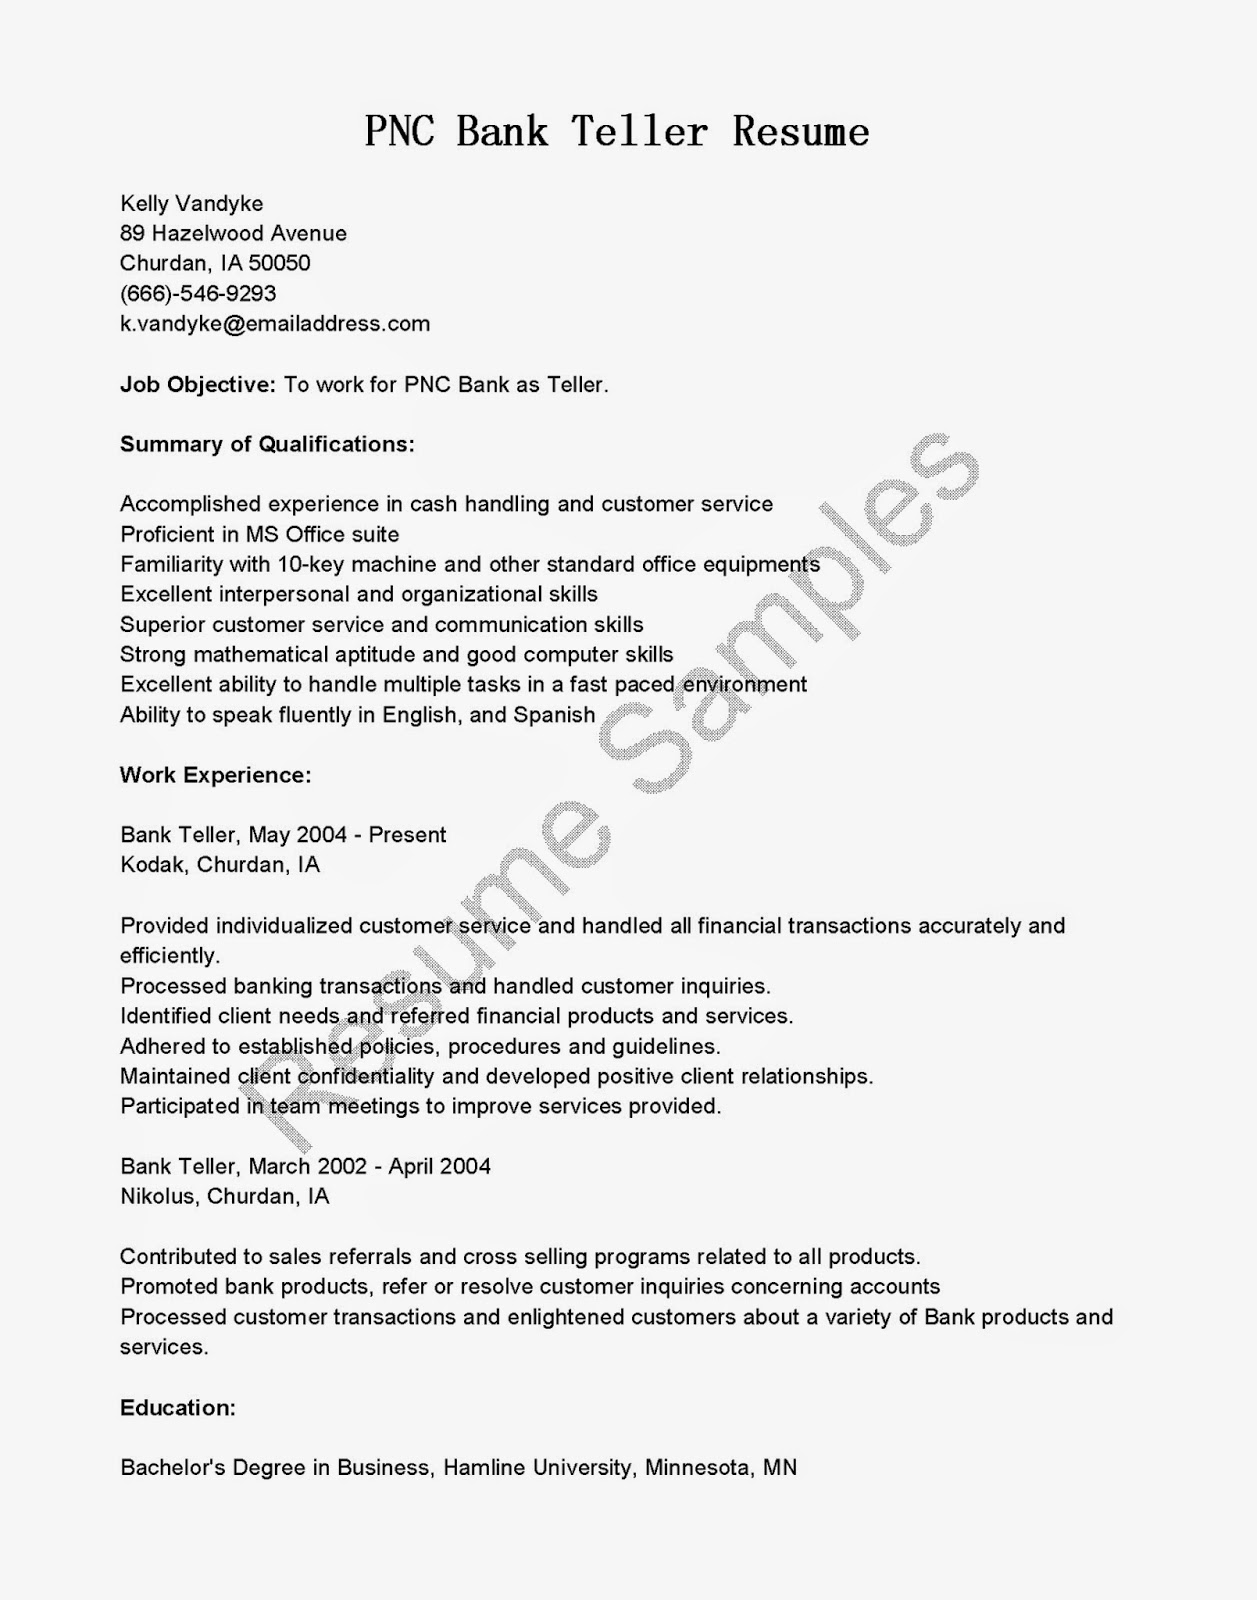 Sample Resume Objective Statements Bank Teller Bank Teller Resume Examples  Cover Letters And Resume  Resume For Teller